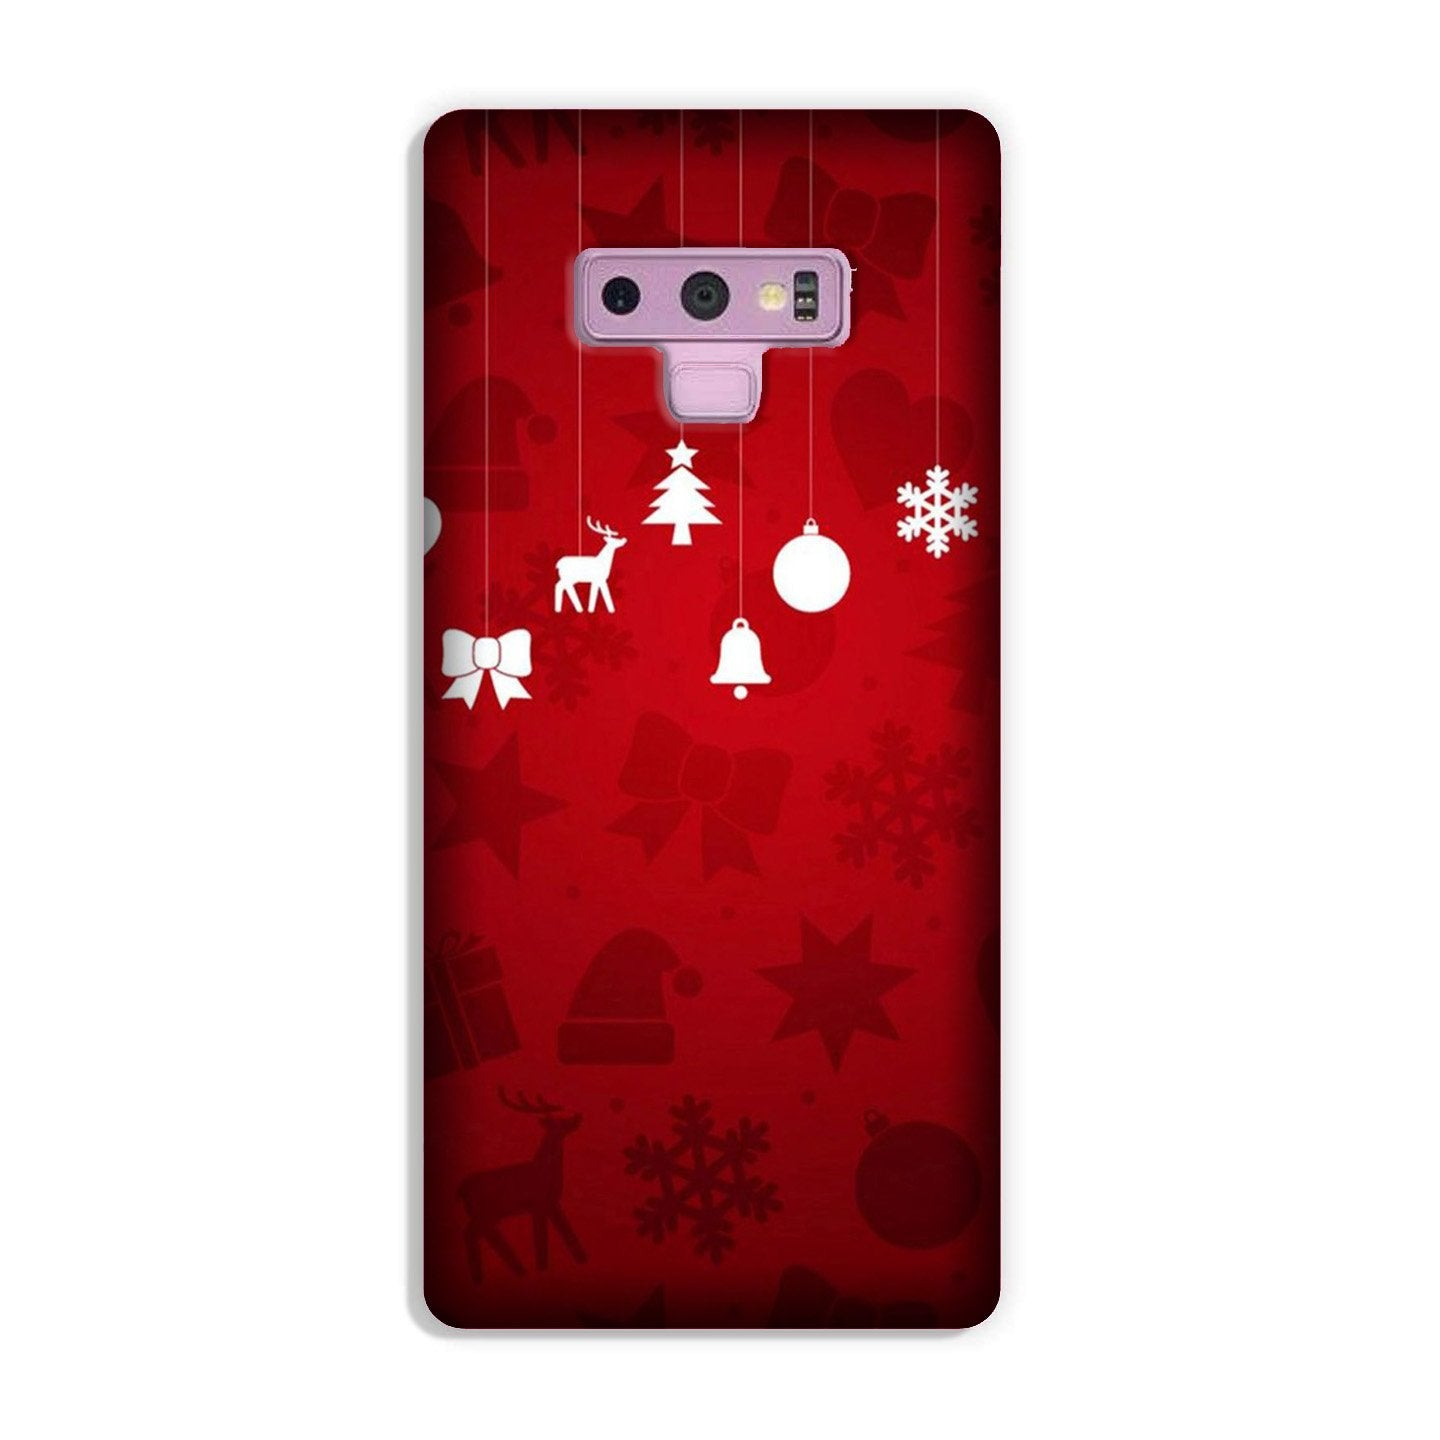 Christmas Case for Galaxy Note 9